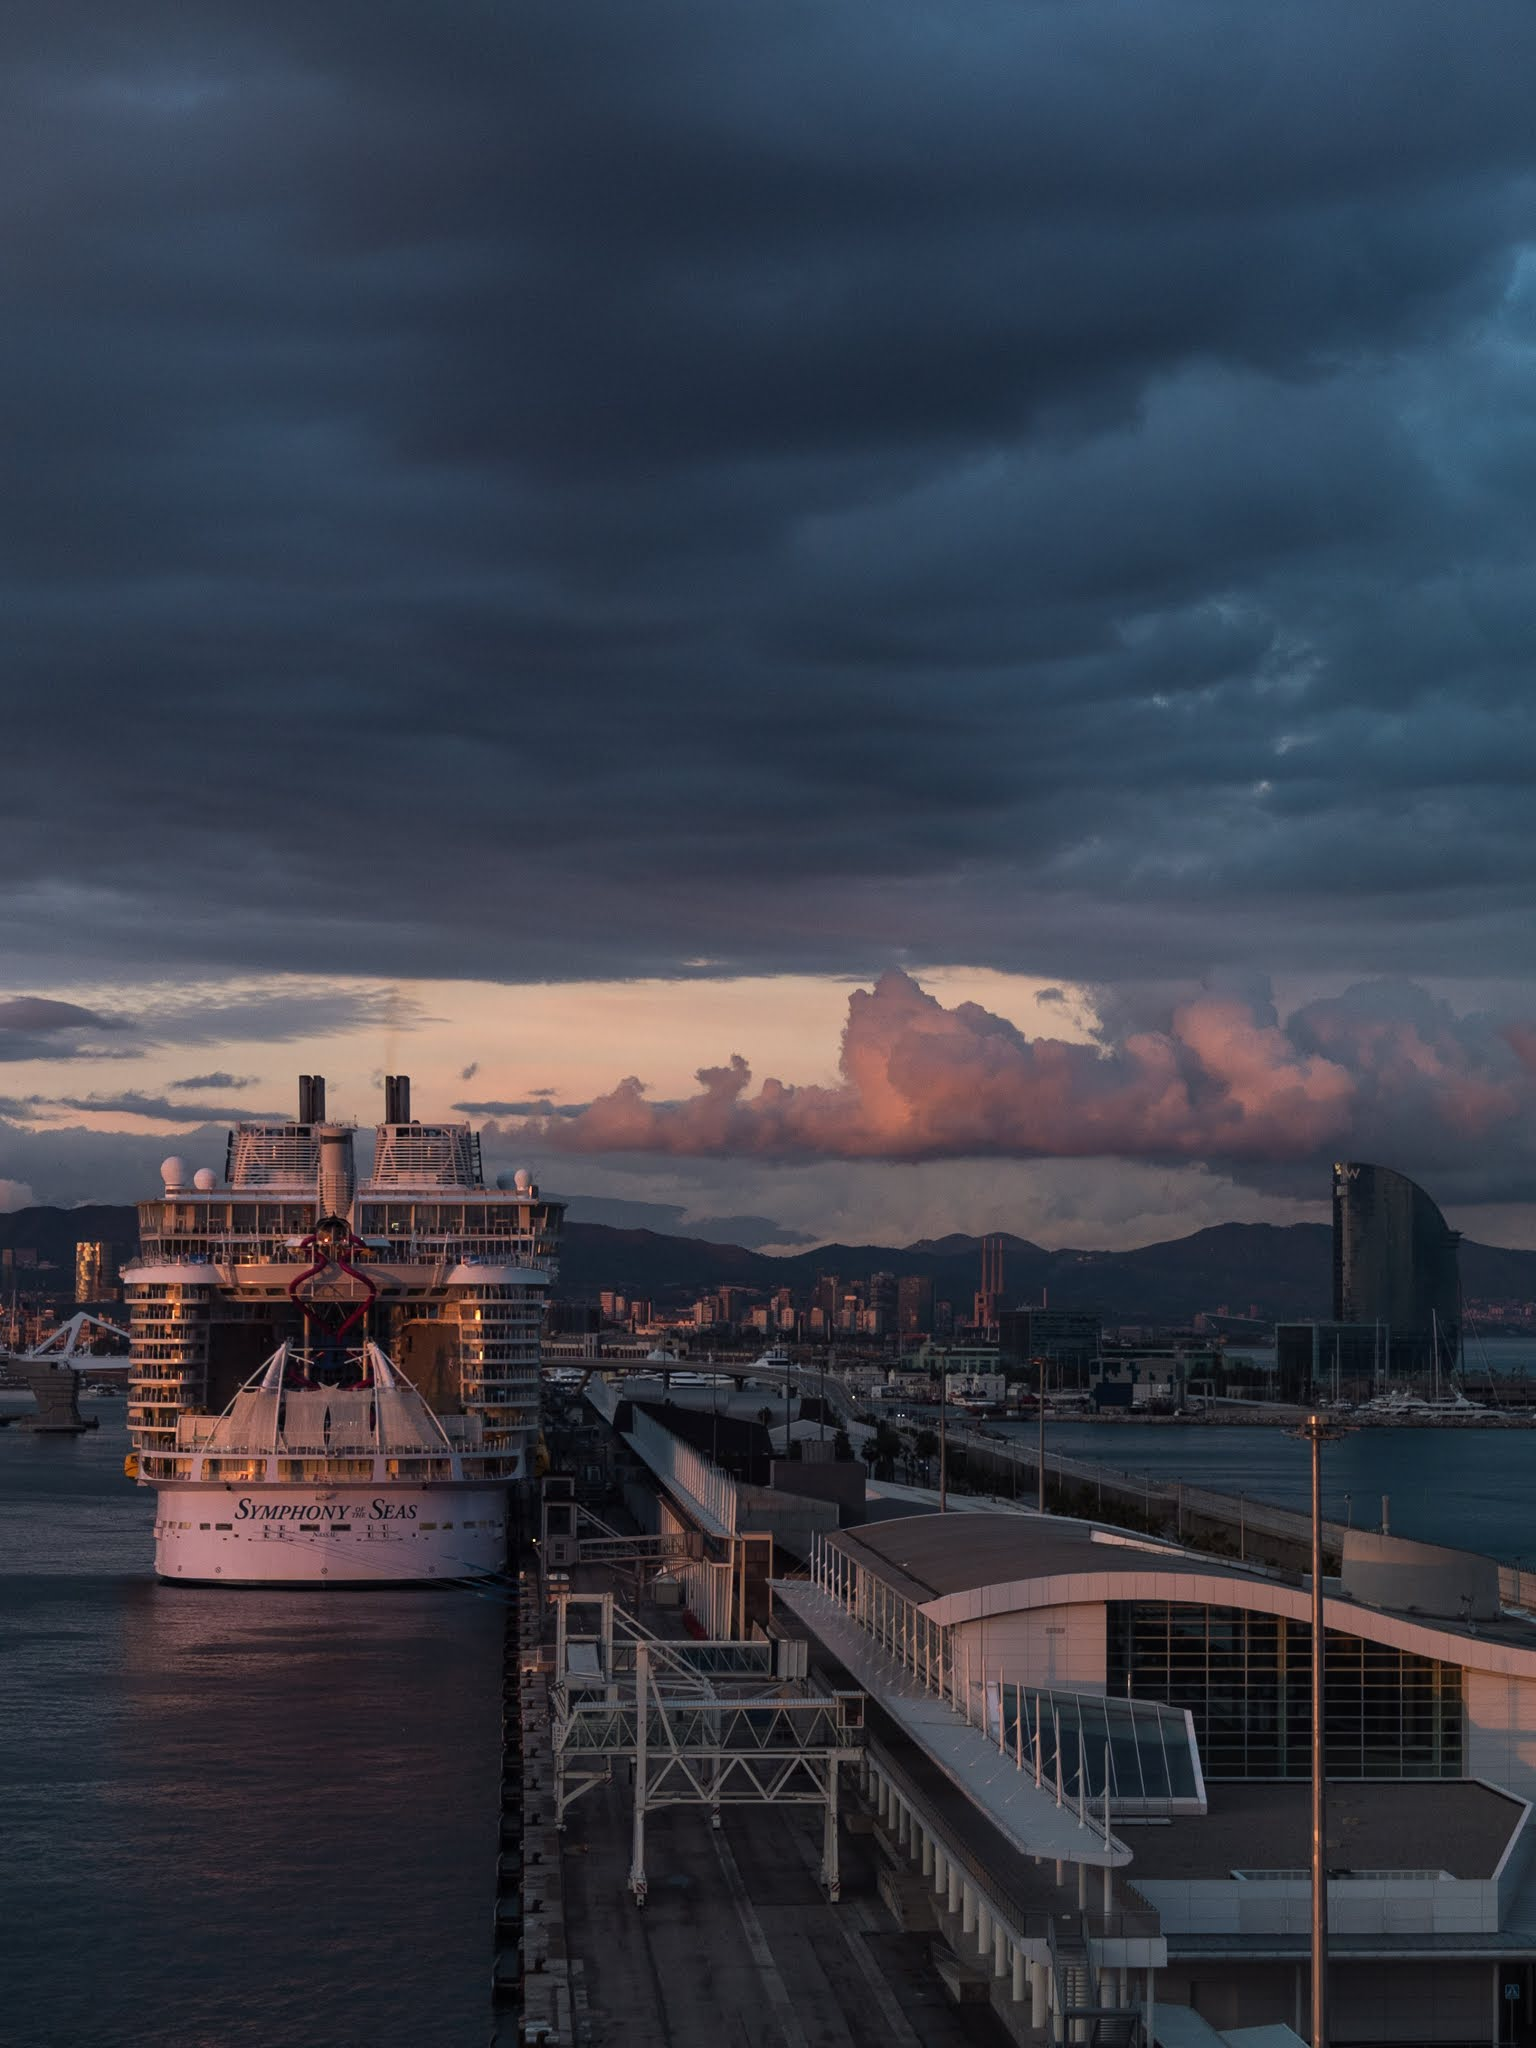 The Symphony of the Seas docked in Barcelona captured at sunset in October 2018.